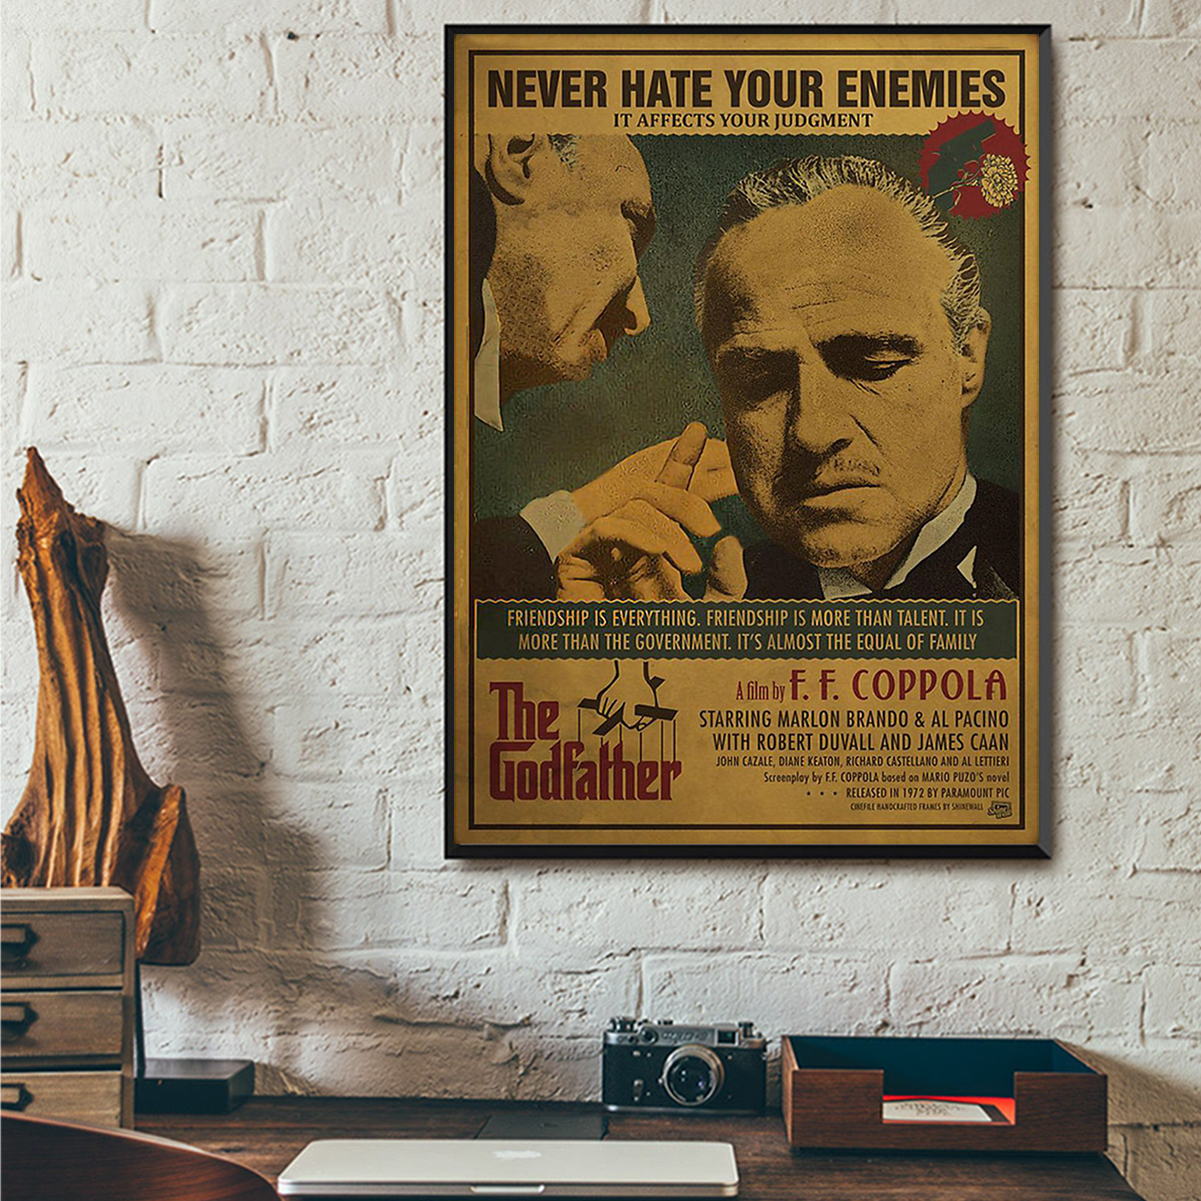 The godfather never hate your enemies it affects your judgment poster A3